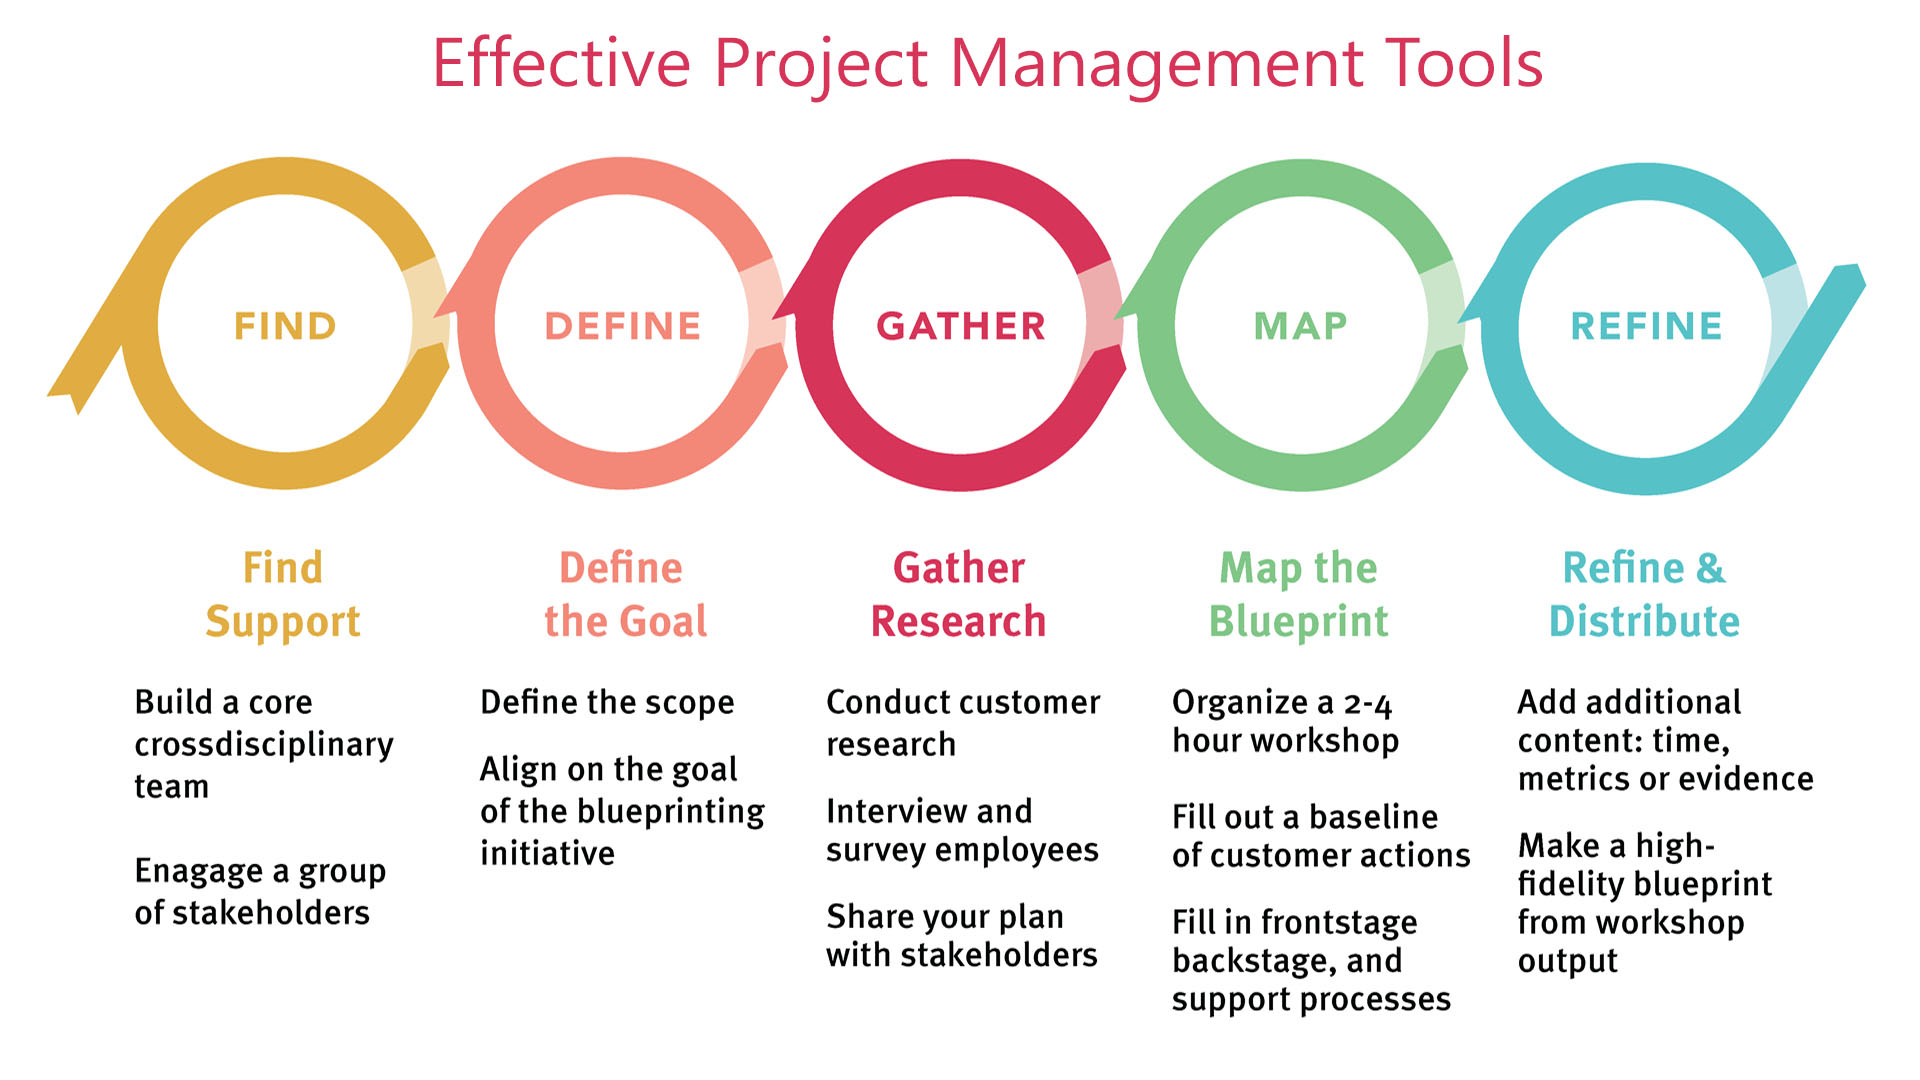 What Are The Project Management Tools For Construction